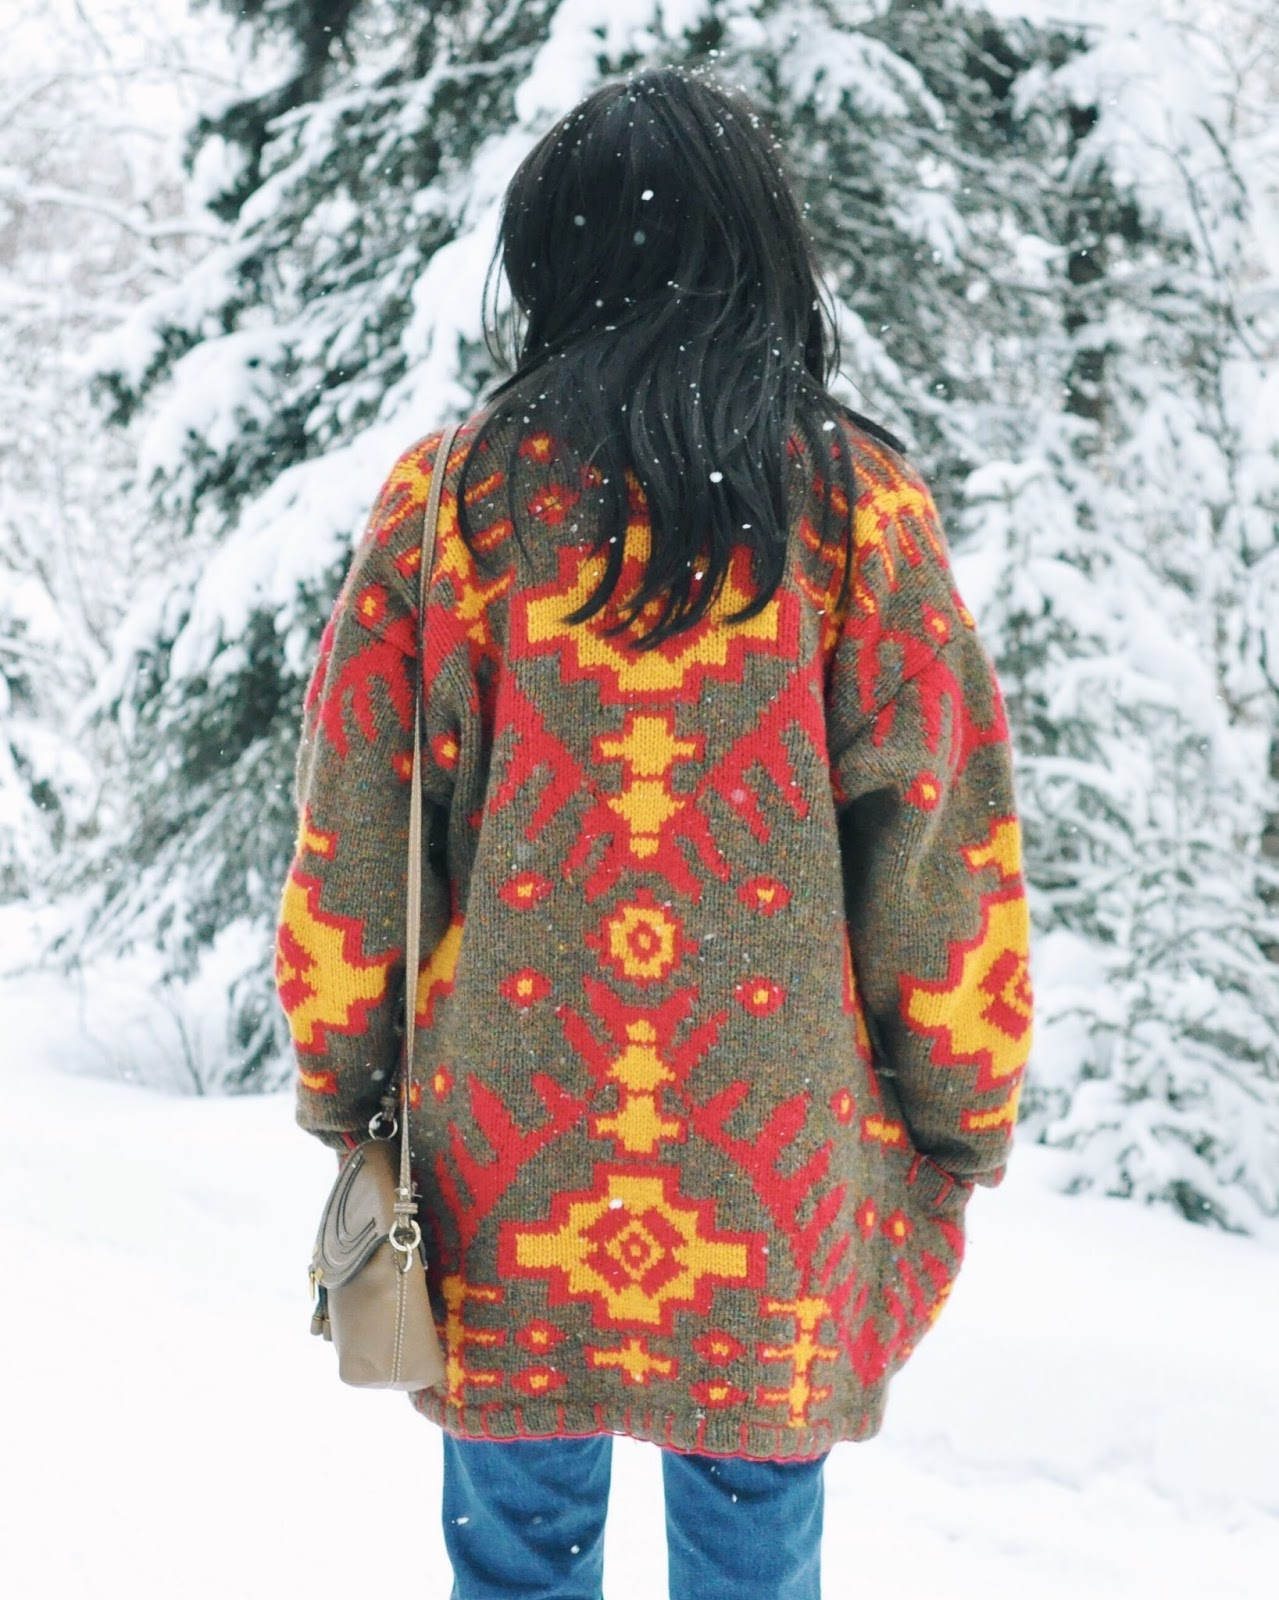 Winter Alaska fashion style thrifted vintage